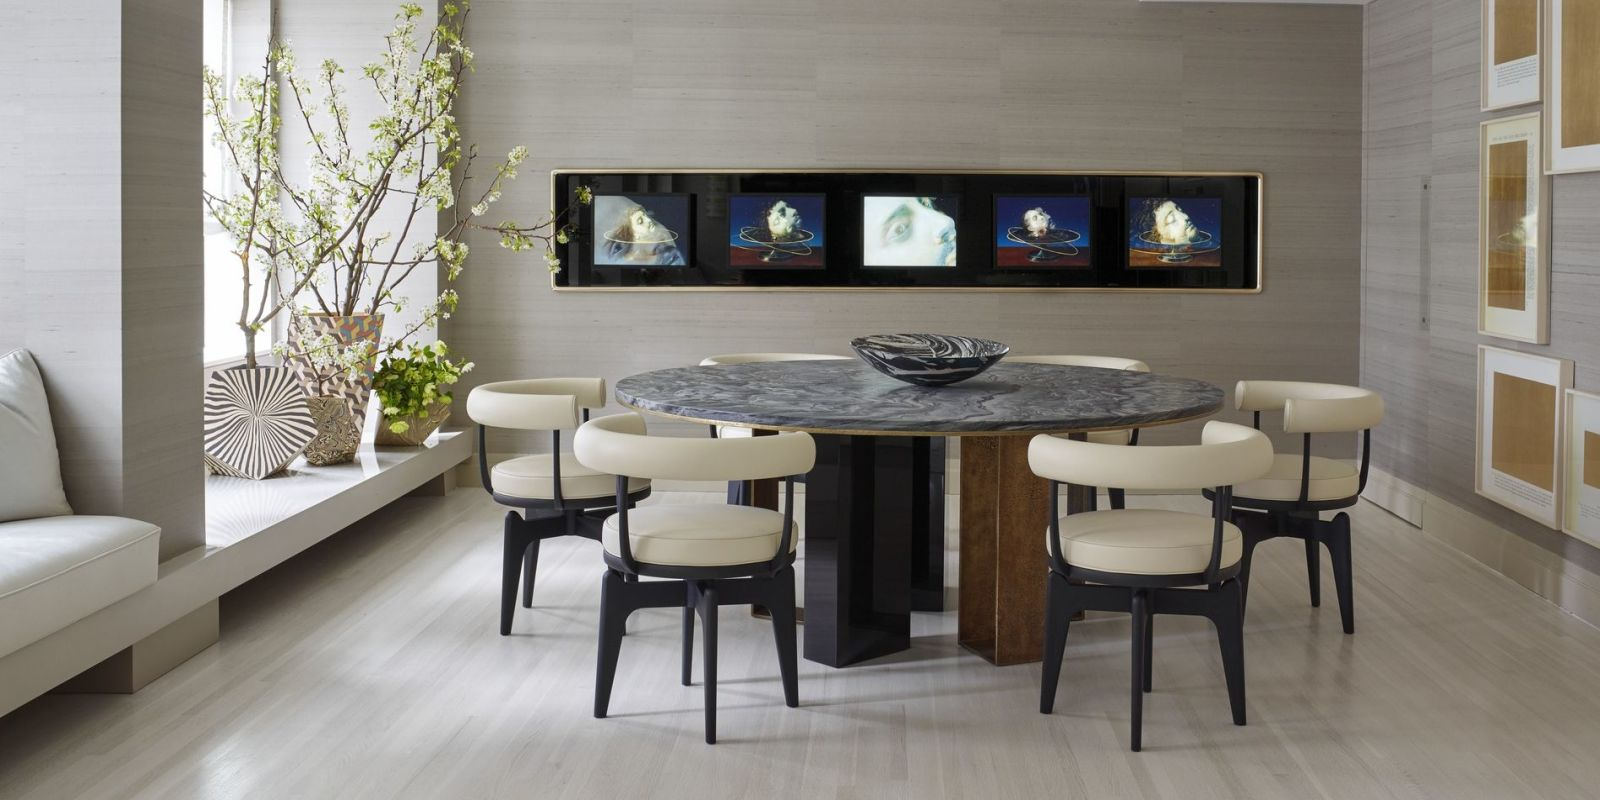 25 modern dining room decorating ideas contemporary for Modern dining room design